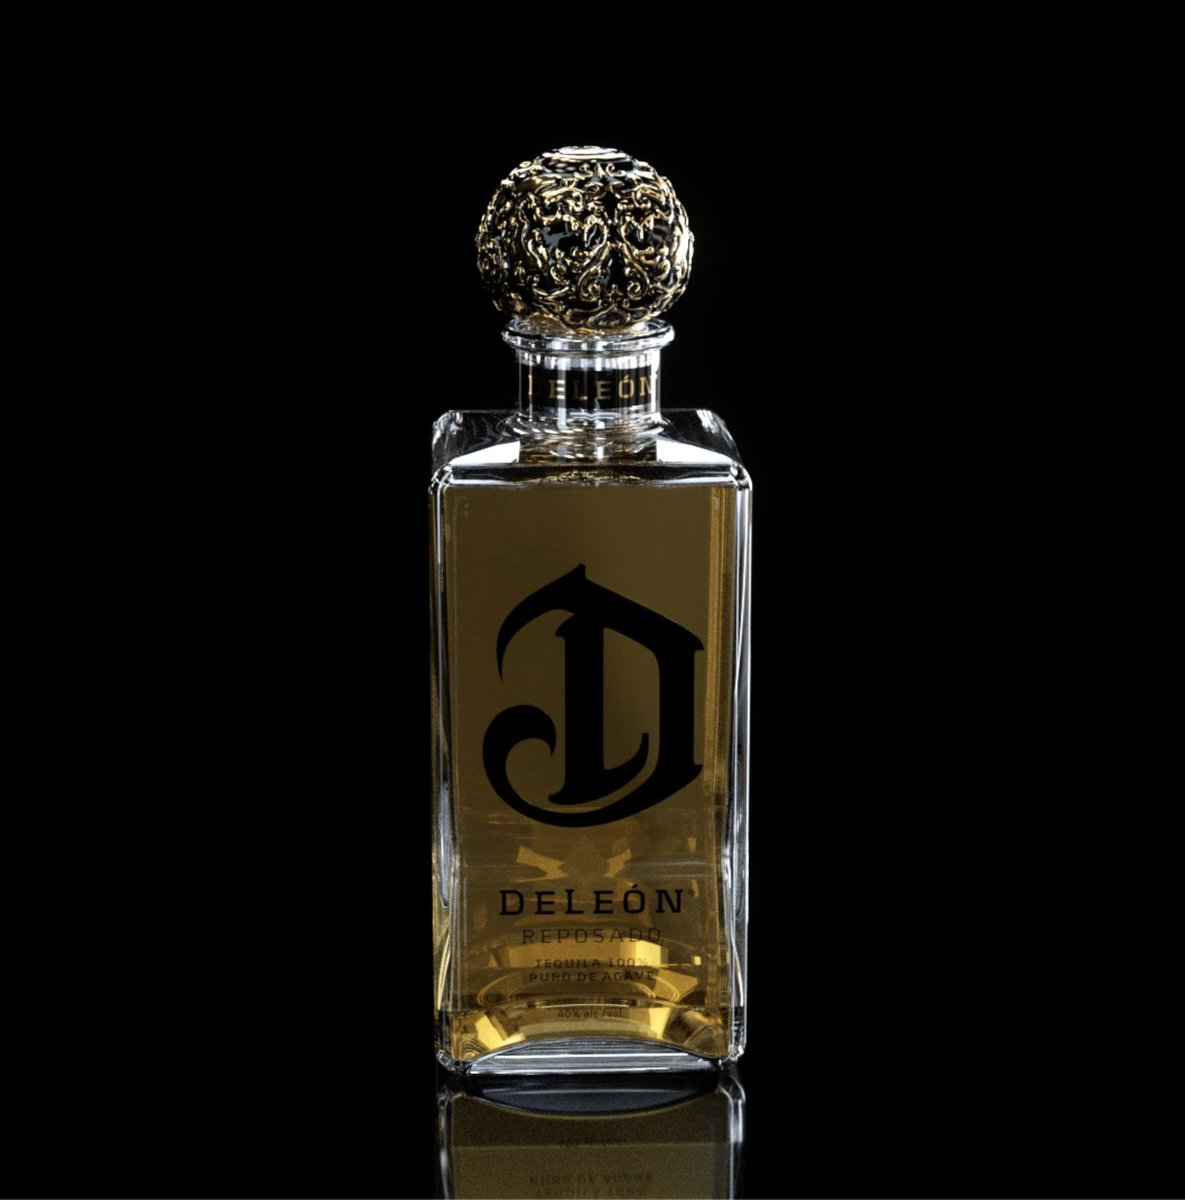 It took us two years of work to design the new bottle and IT'S FINALLY HERE!!!⁣ ⁣ When you build a brand you have to trust the process.⁣ ⁣ New bottle. New energy. New year. Welcome to 2021. DeLeón Tequila.... and it's owned by a Black man. #deleontequila  @deleontequila